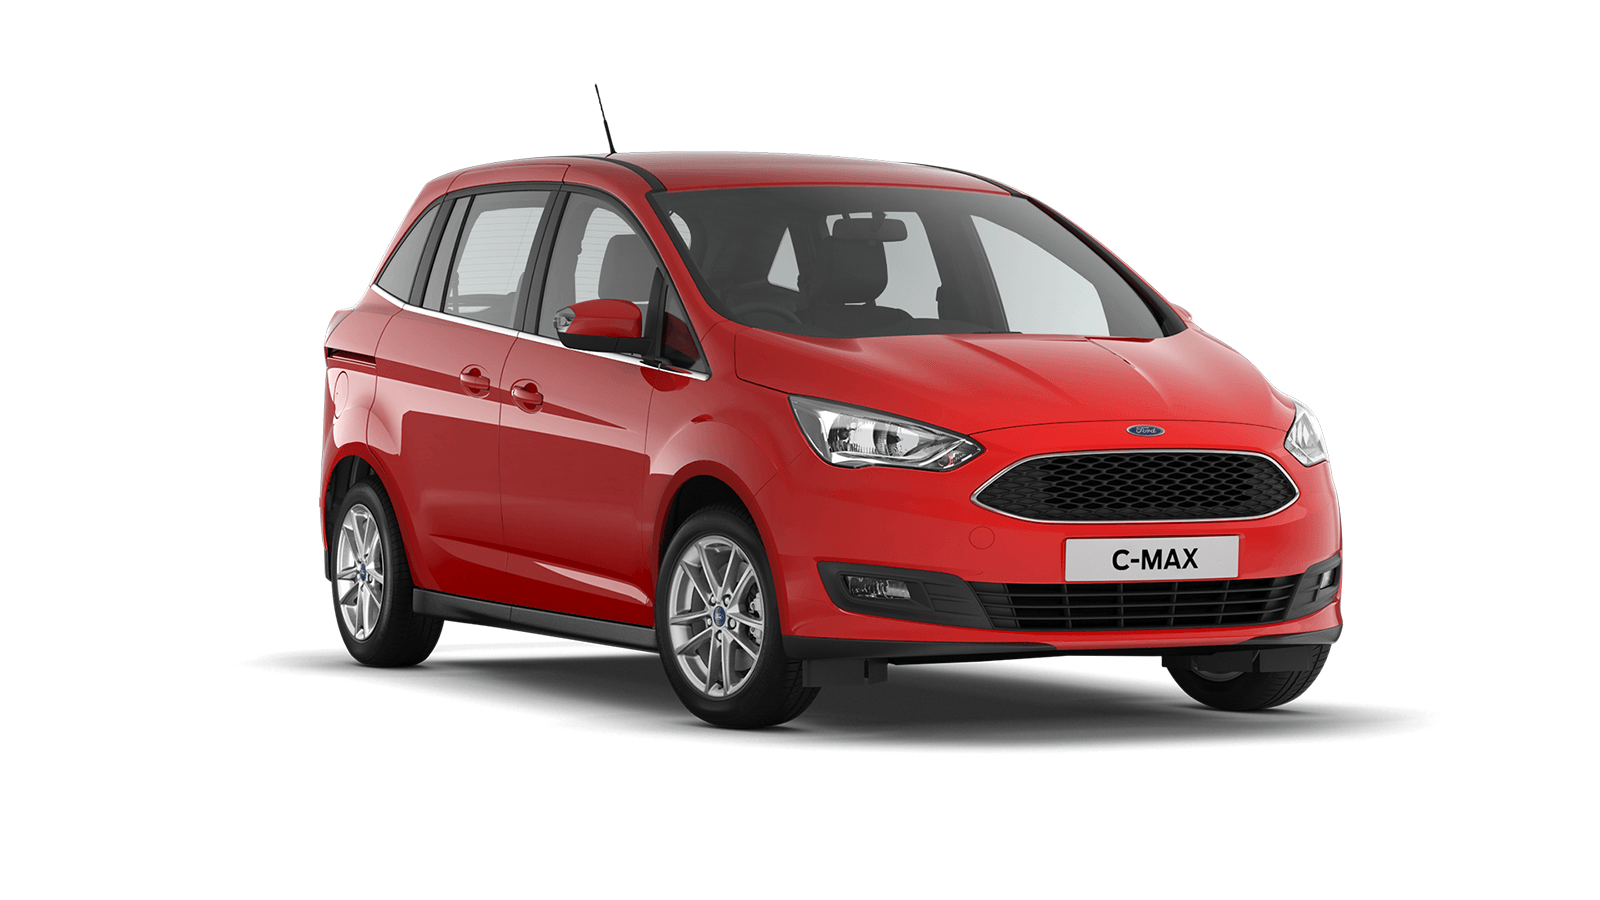 Ford Grand C-MAX Zetec 1.5L EcoBoost 150PS at RGR Garages